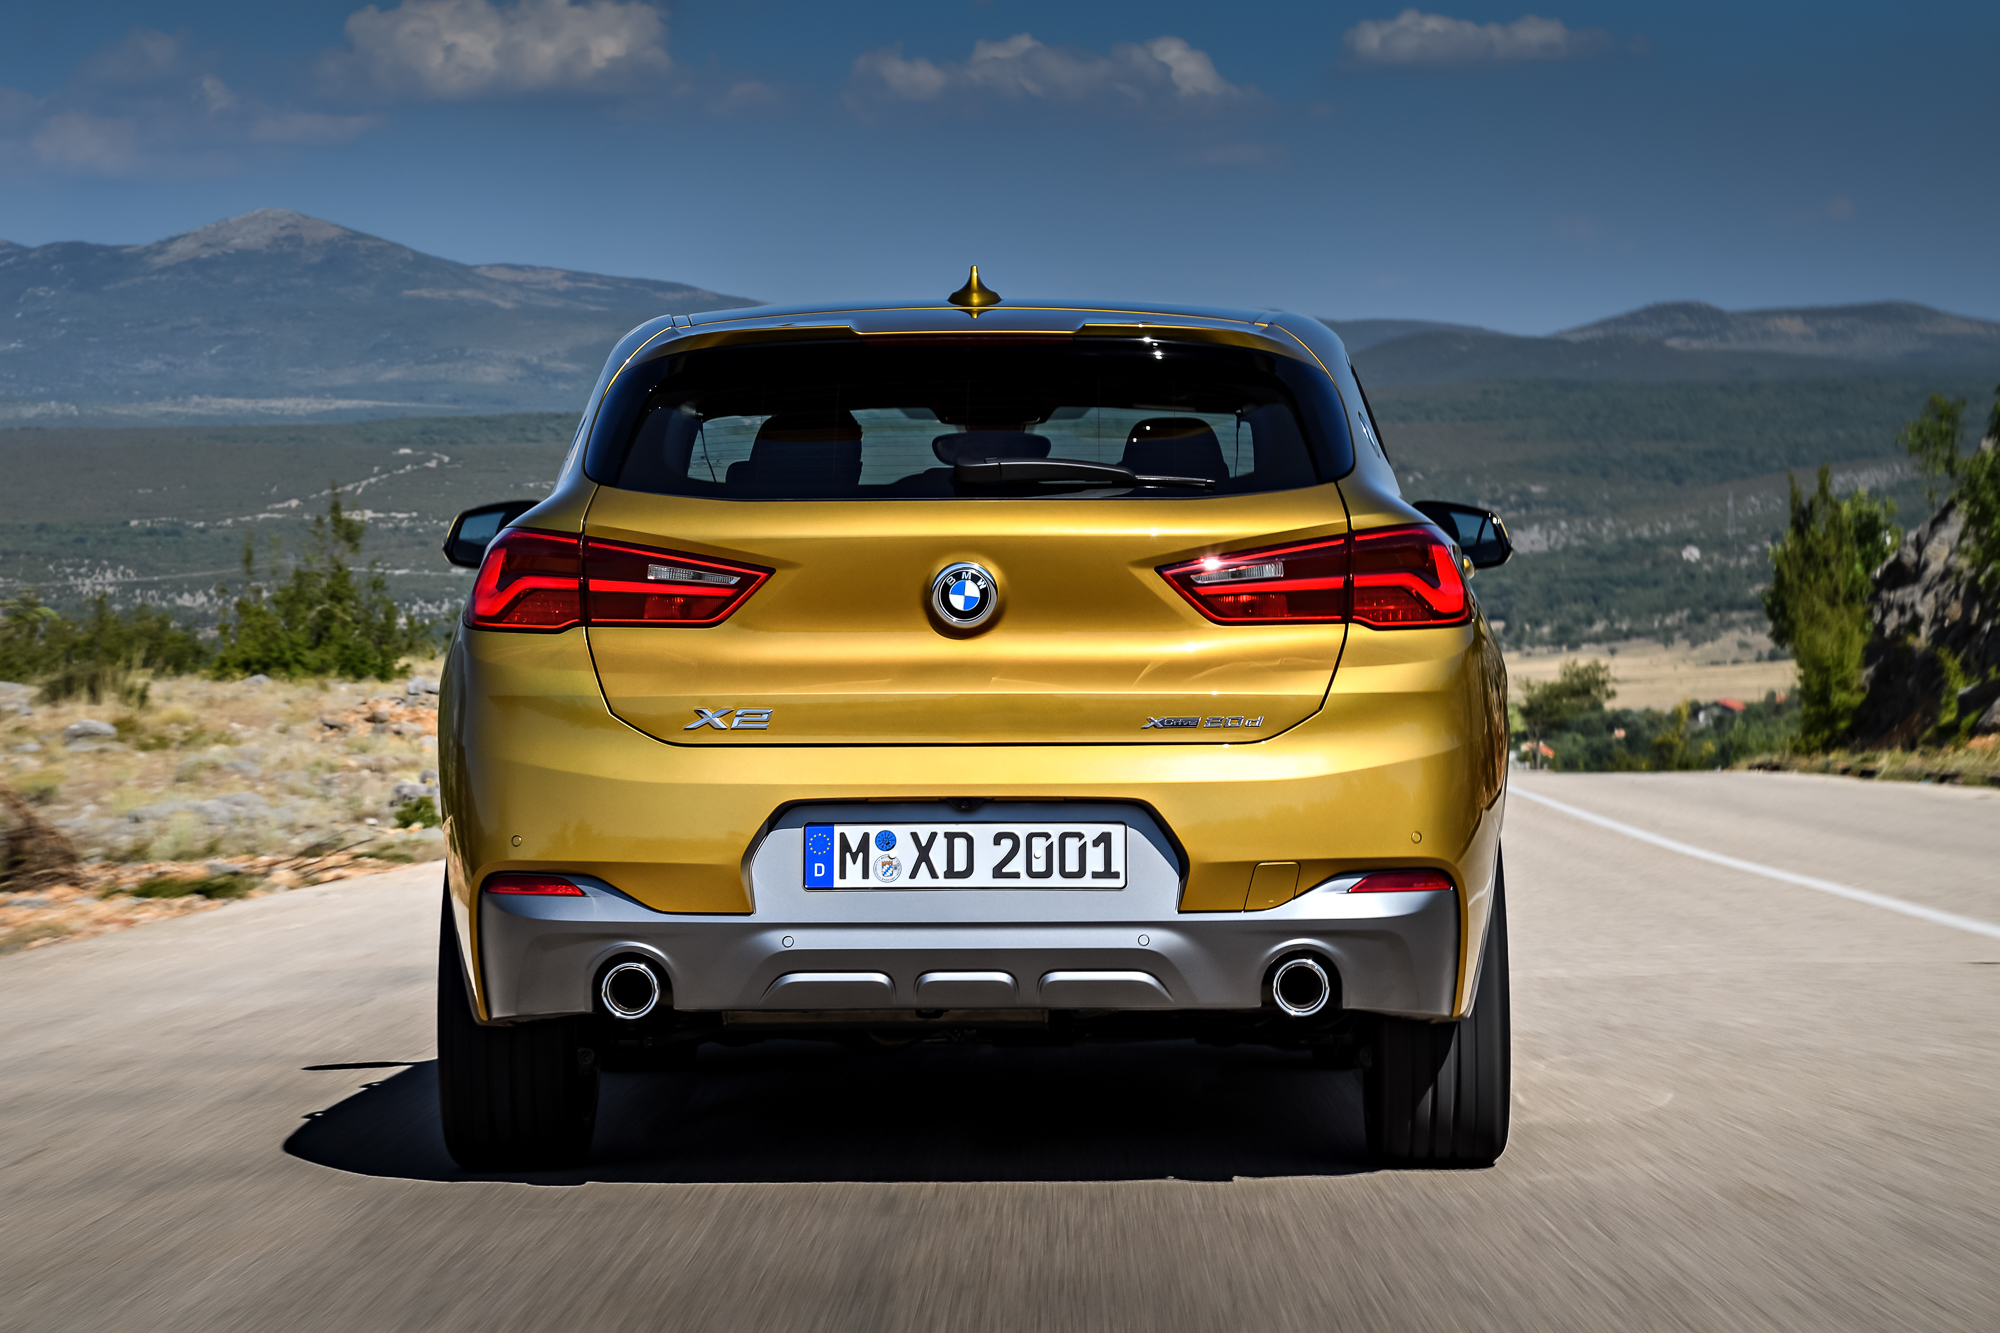 2018 bmw x2 noch ein neuer suv neuwagen 2018. Black Bedroom Furniture Sets. Home Design Ideas